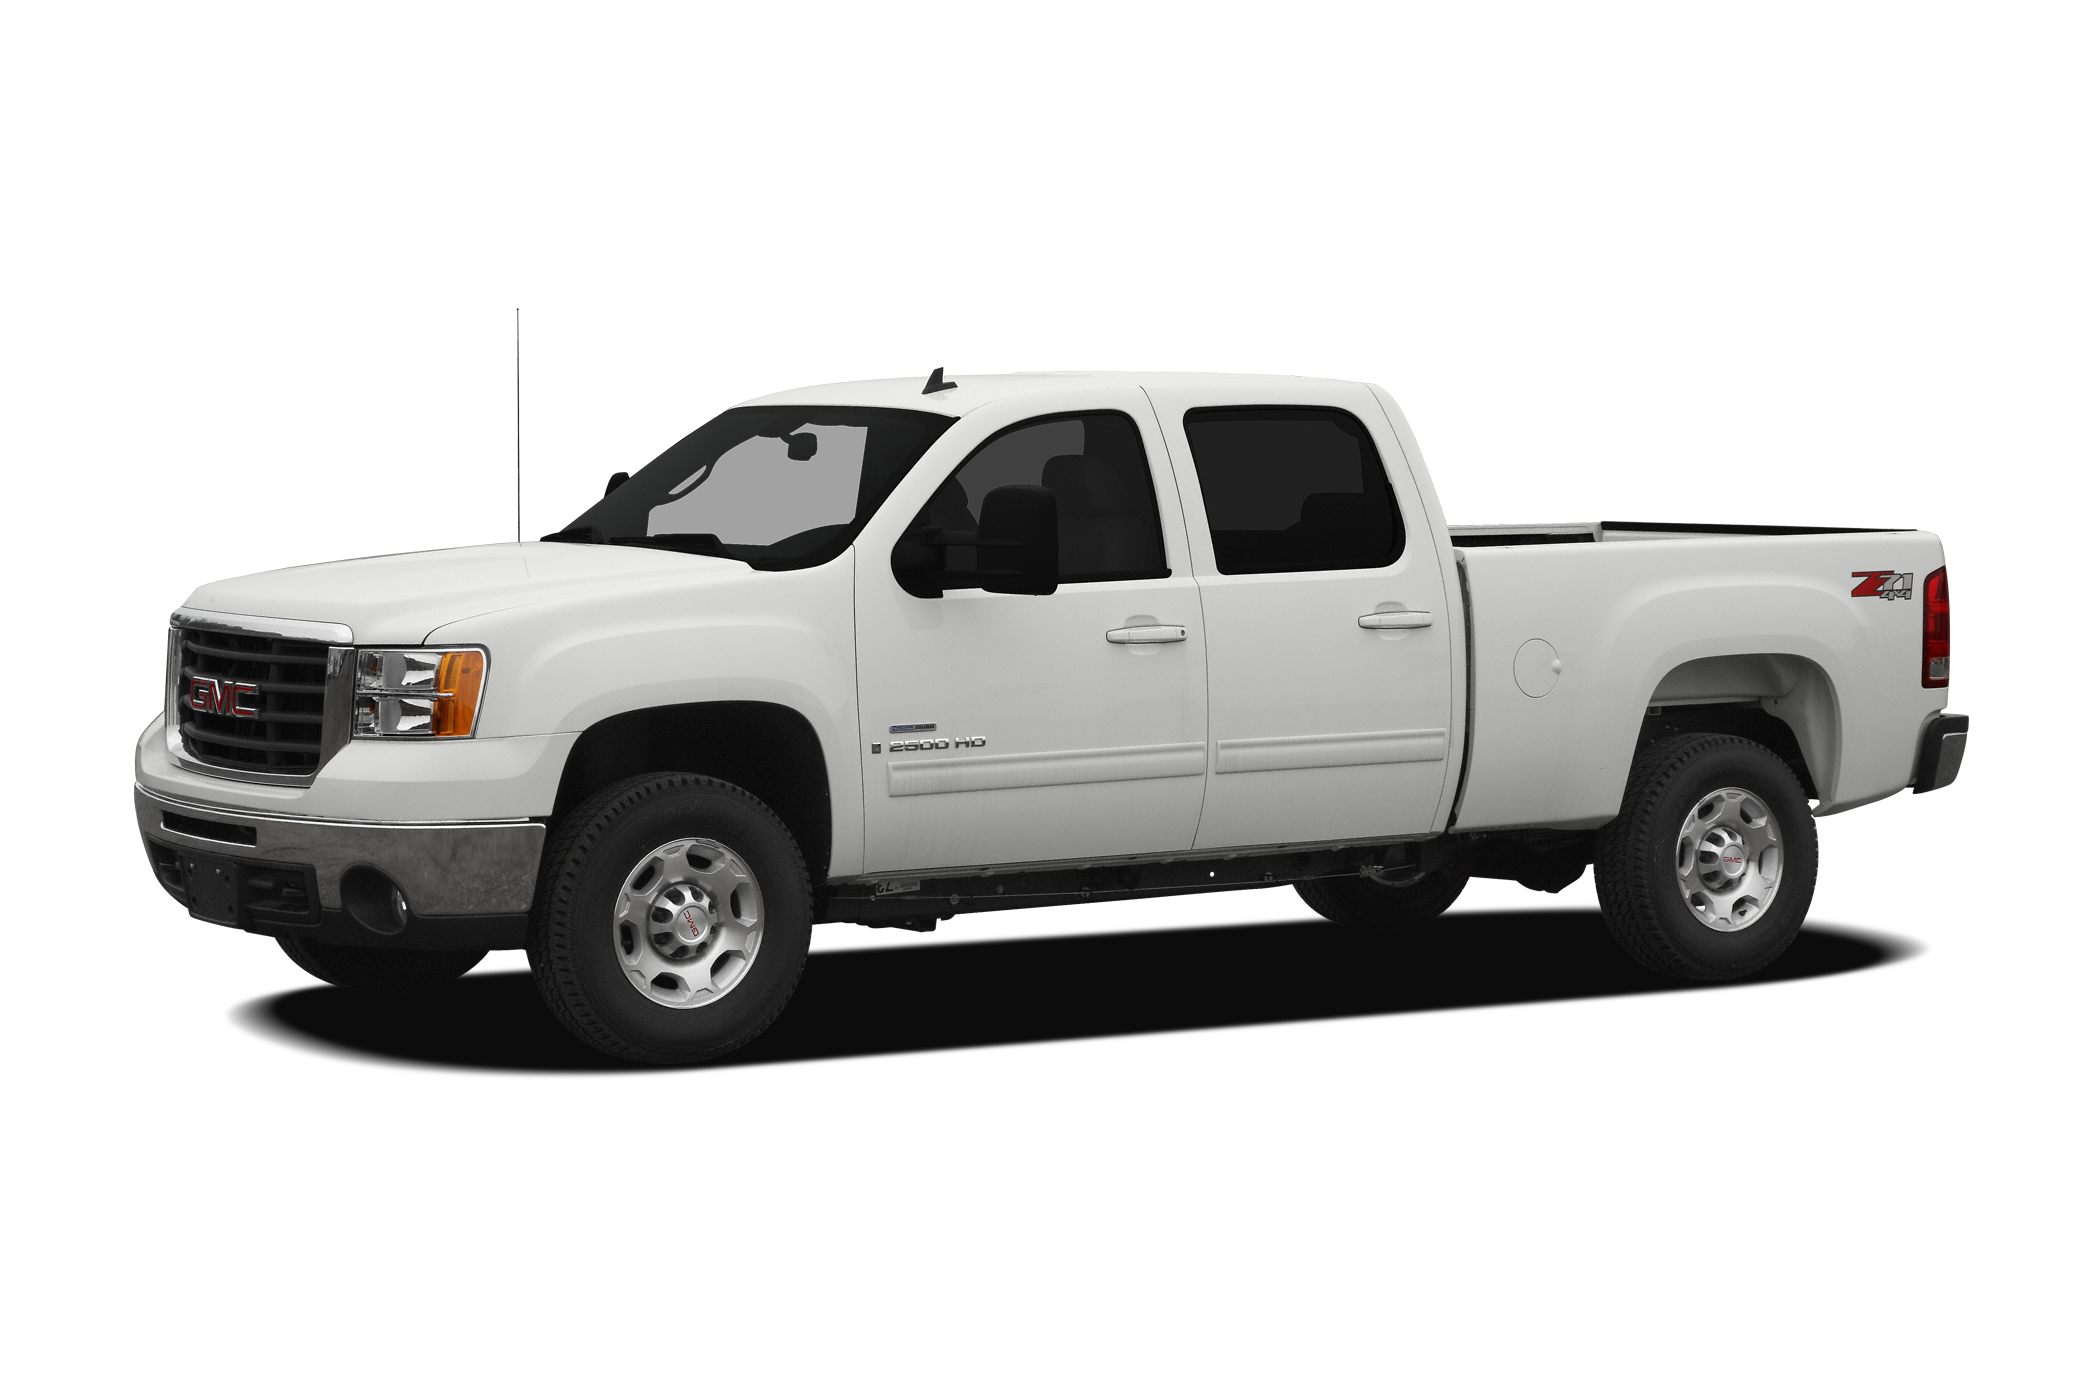 2008 Gmc Sierra 3500hd Sle1 4x4 Crew Cab 167 In Wb Srw Specs And Prices